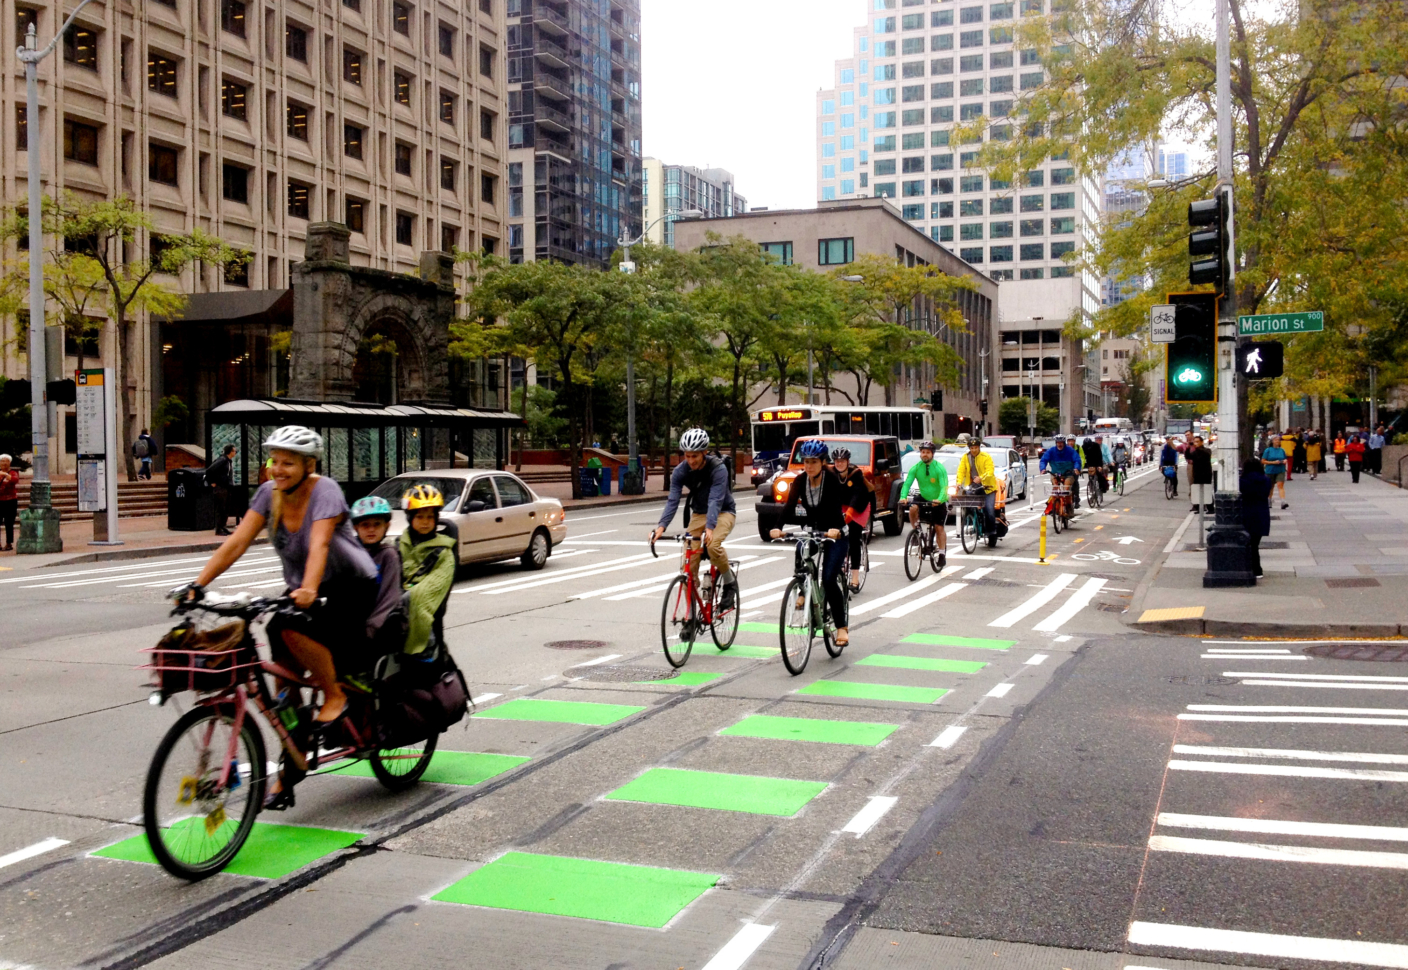 downtown bike lanes with riders